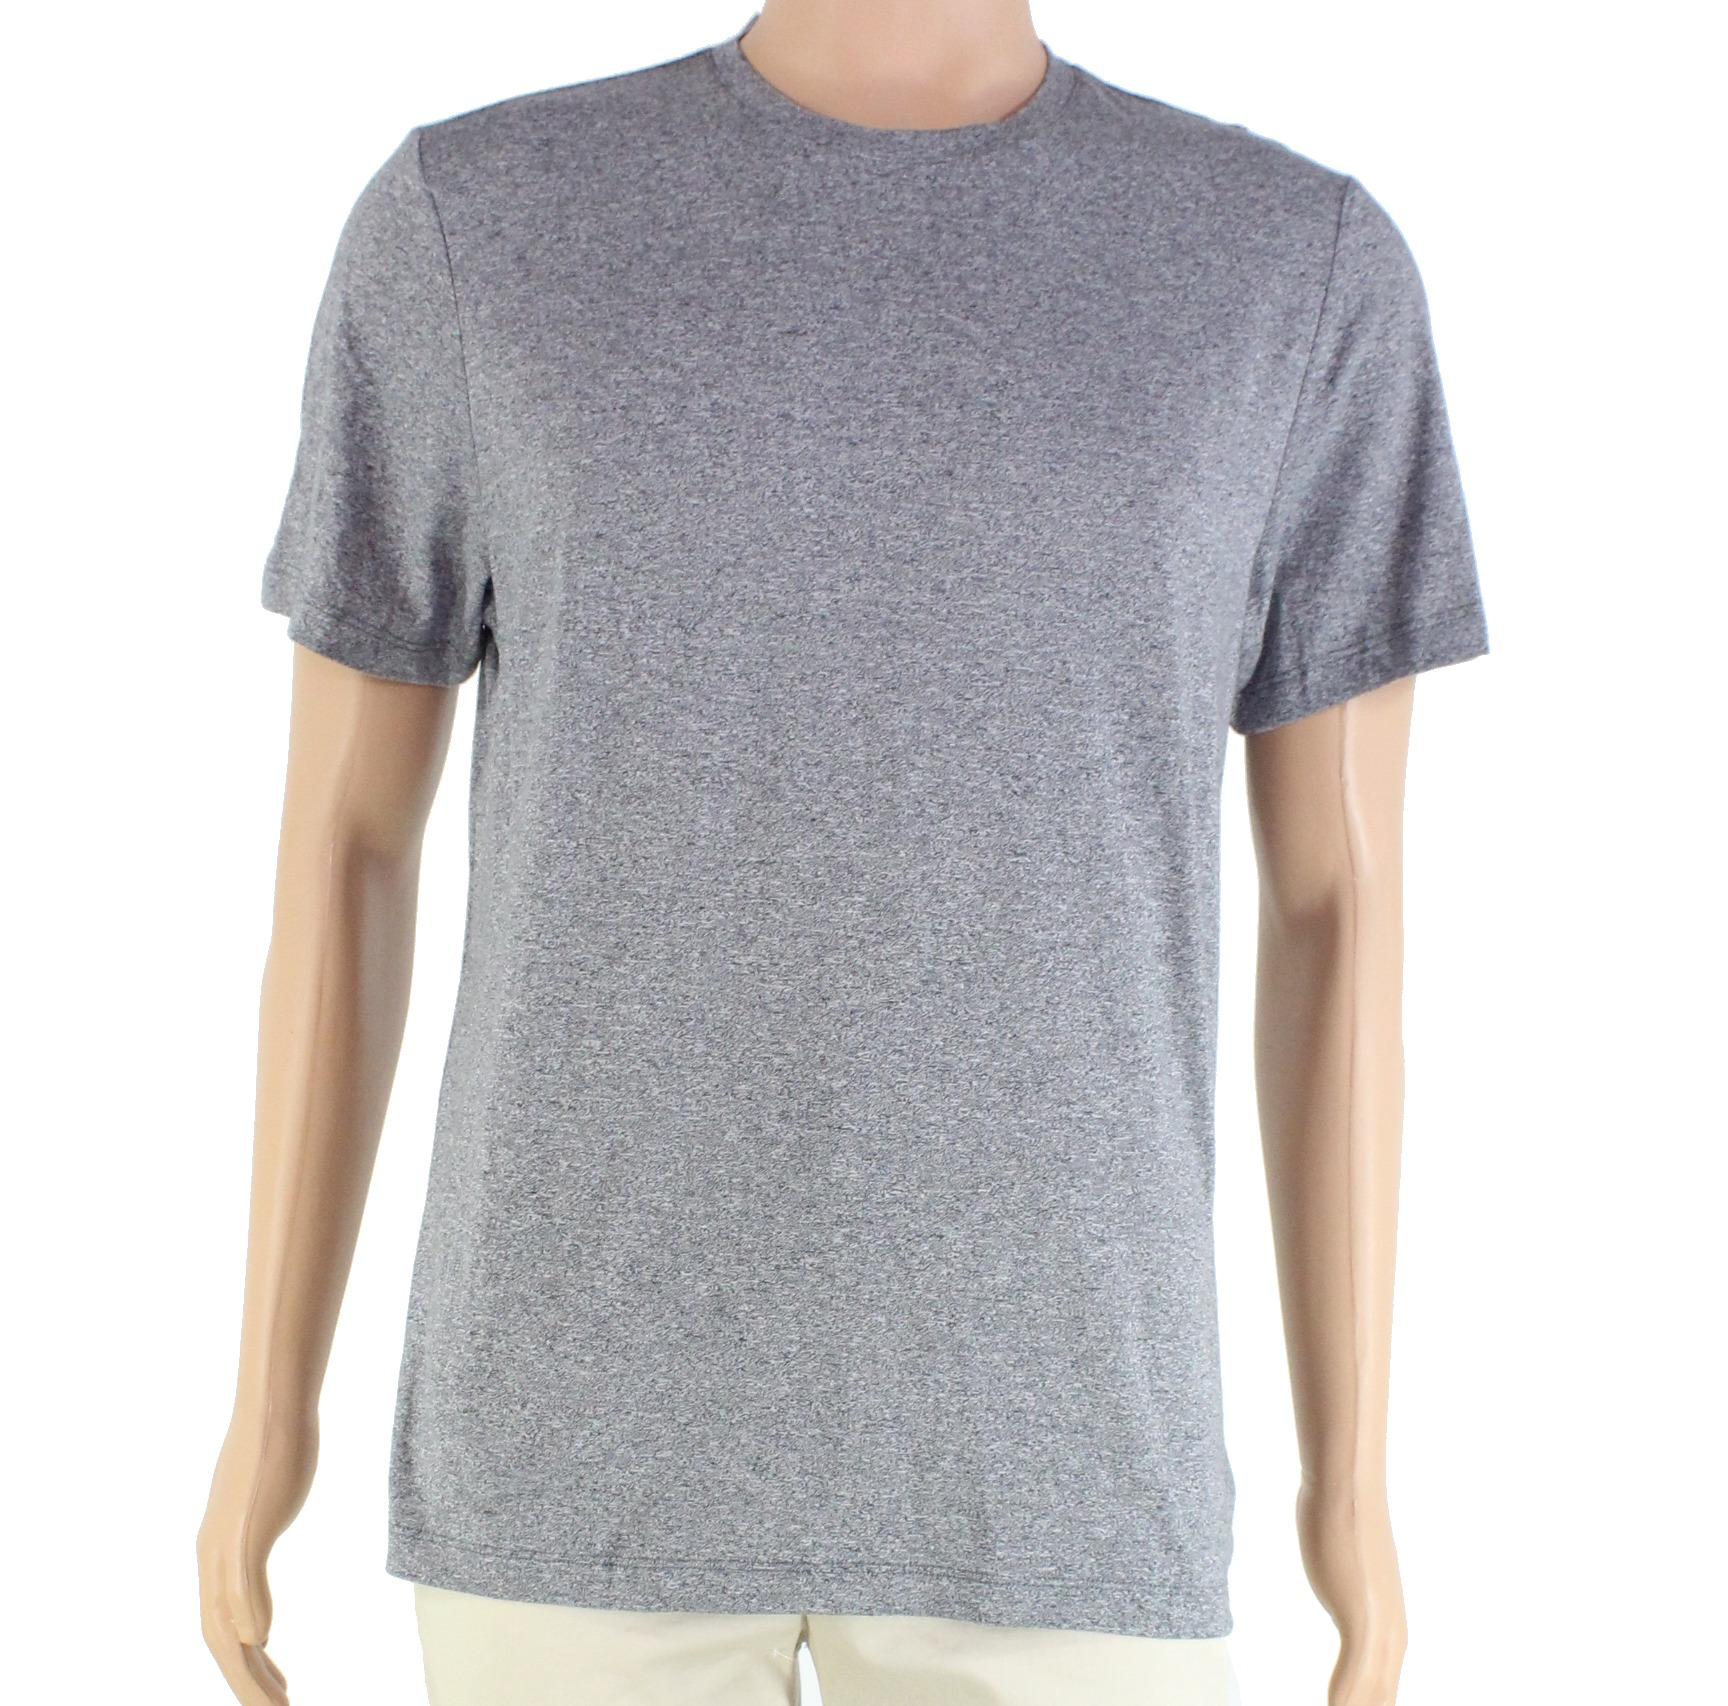 New-Alfani-Mens-T-Shirt-Gray-Size-Medium-M-Core-Crewneck-Stretch-Tee-29-205 thumbnail 1